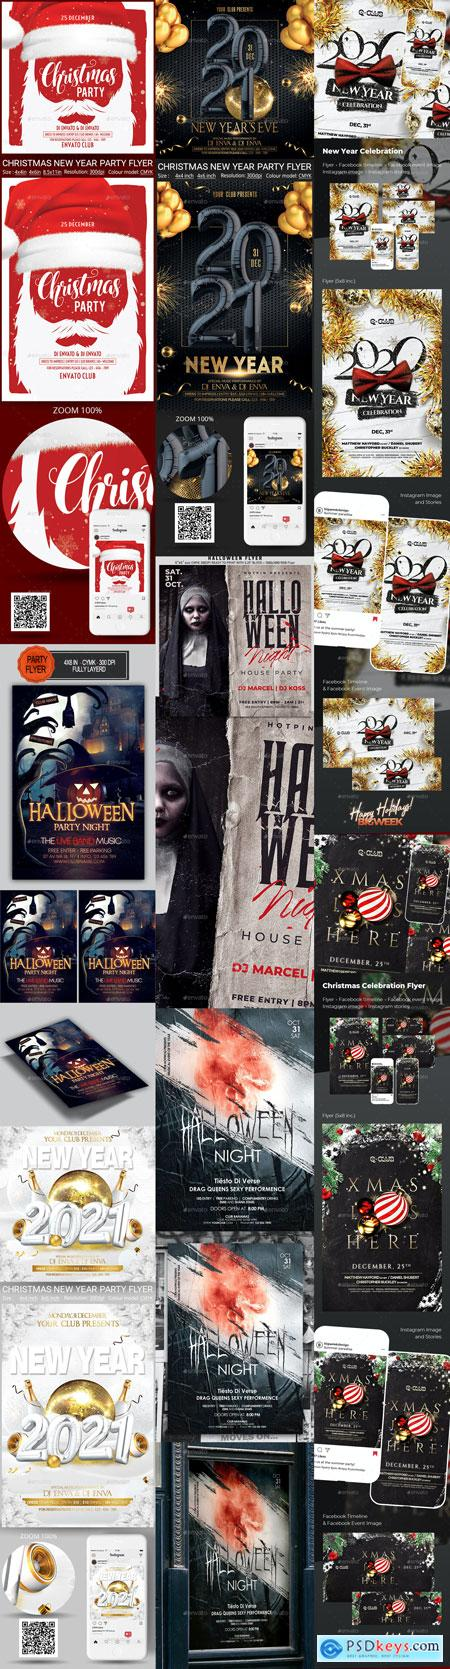 Halloween and NewYear Flyer Templates Vip 21-OCT-2020 PREVIEW